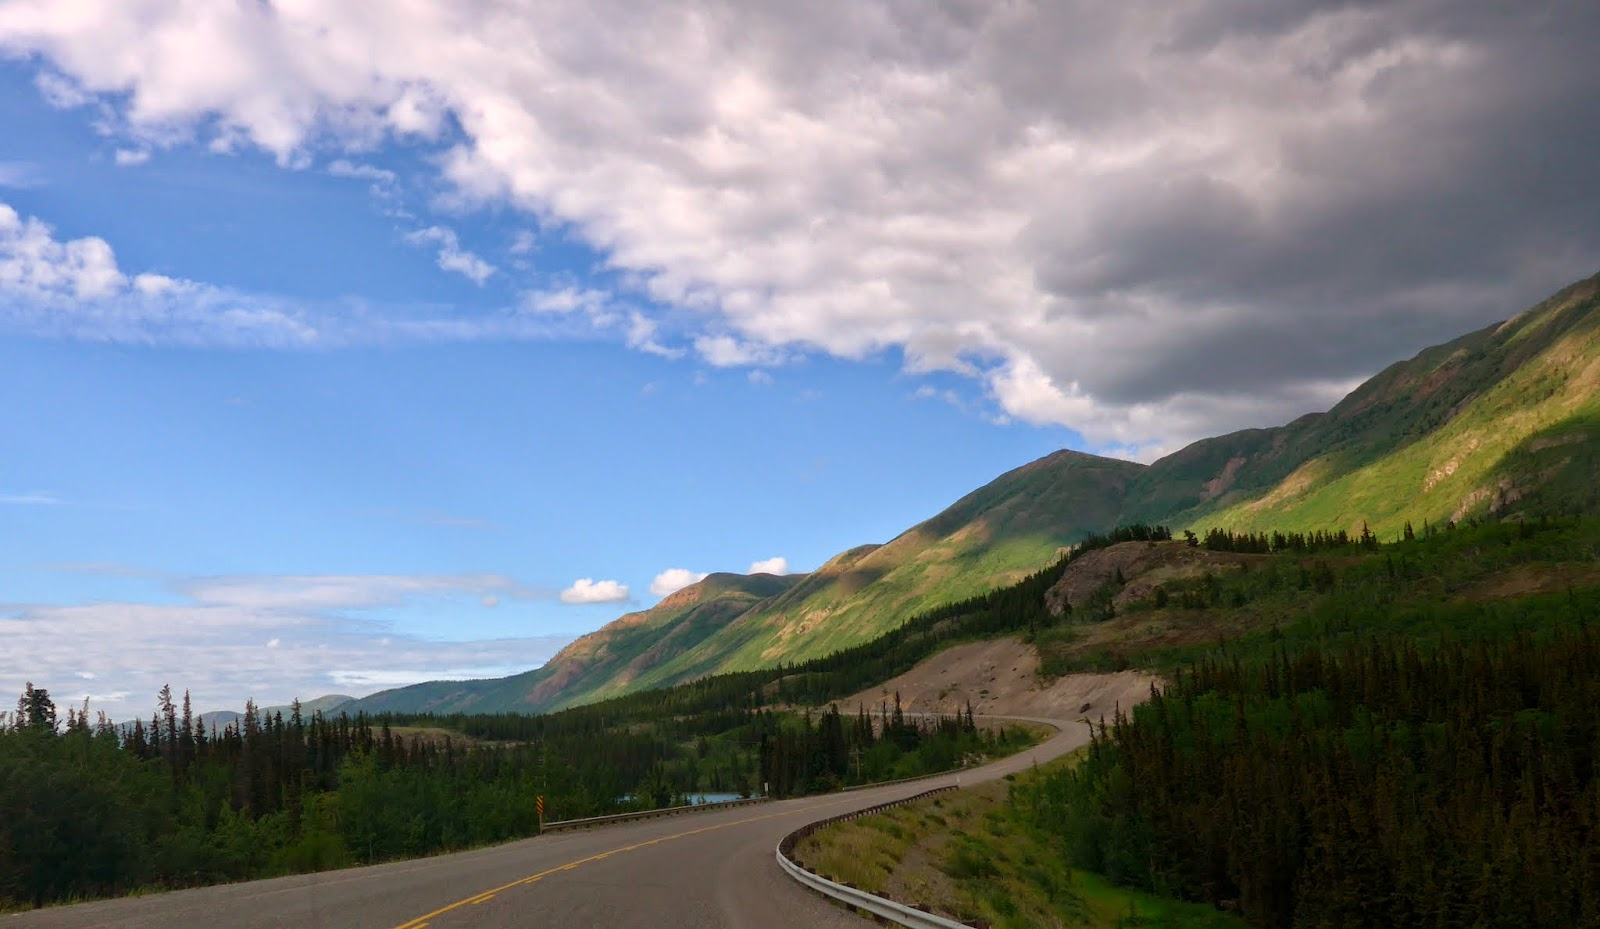 The road back to Whitehorse.